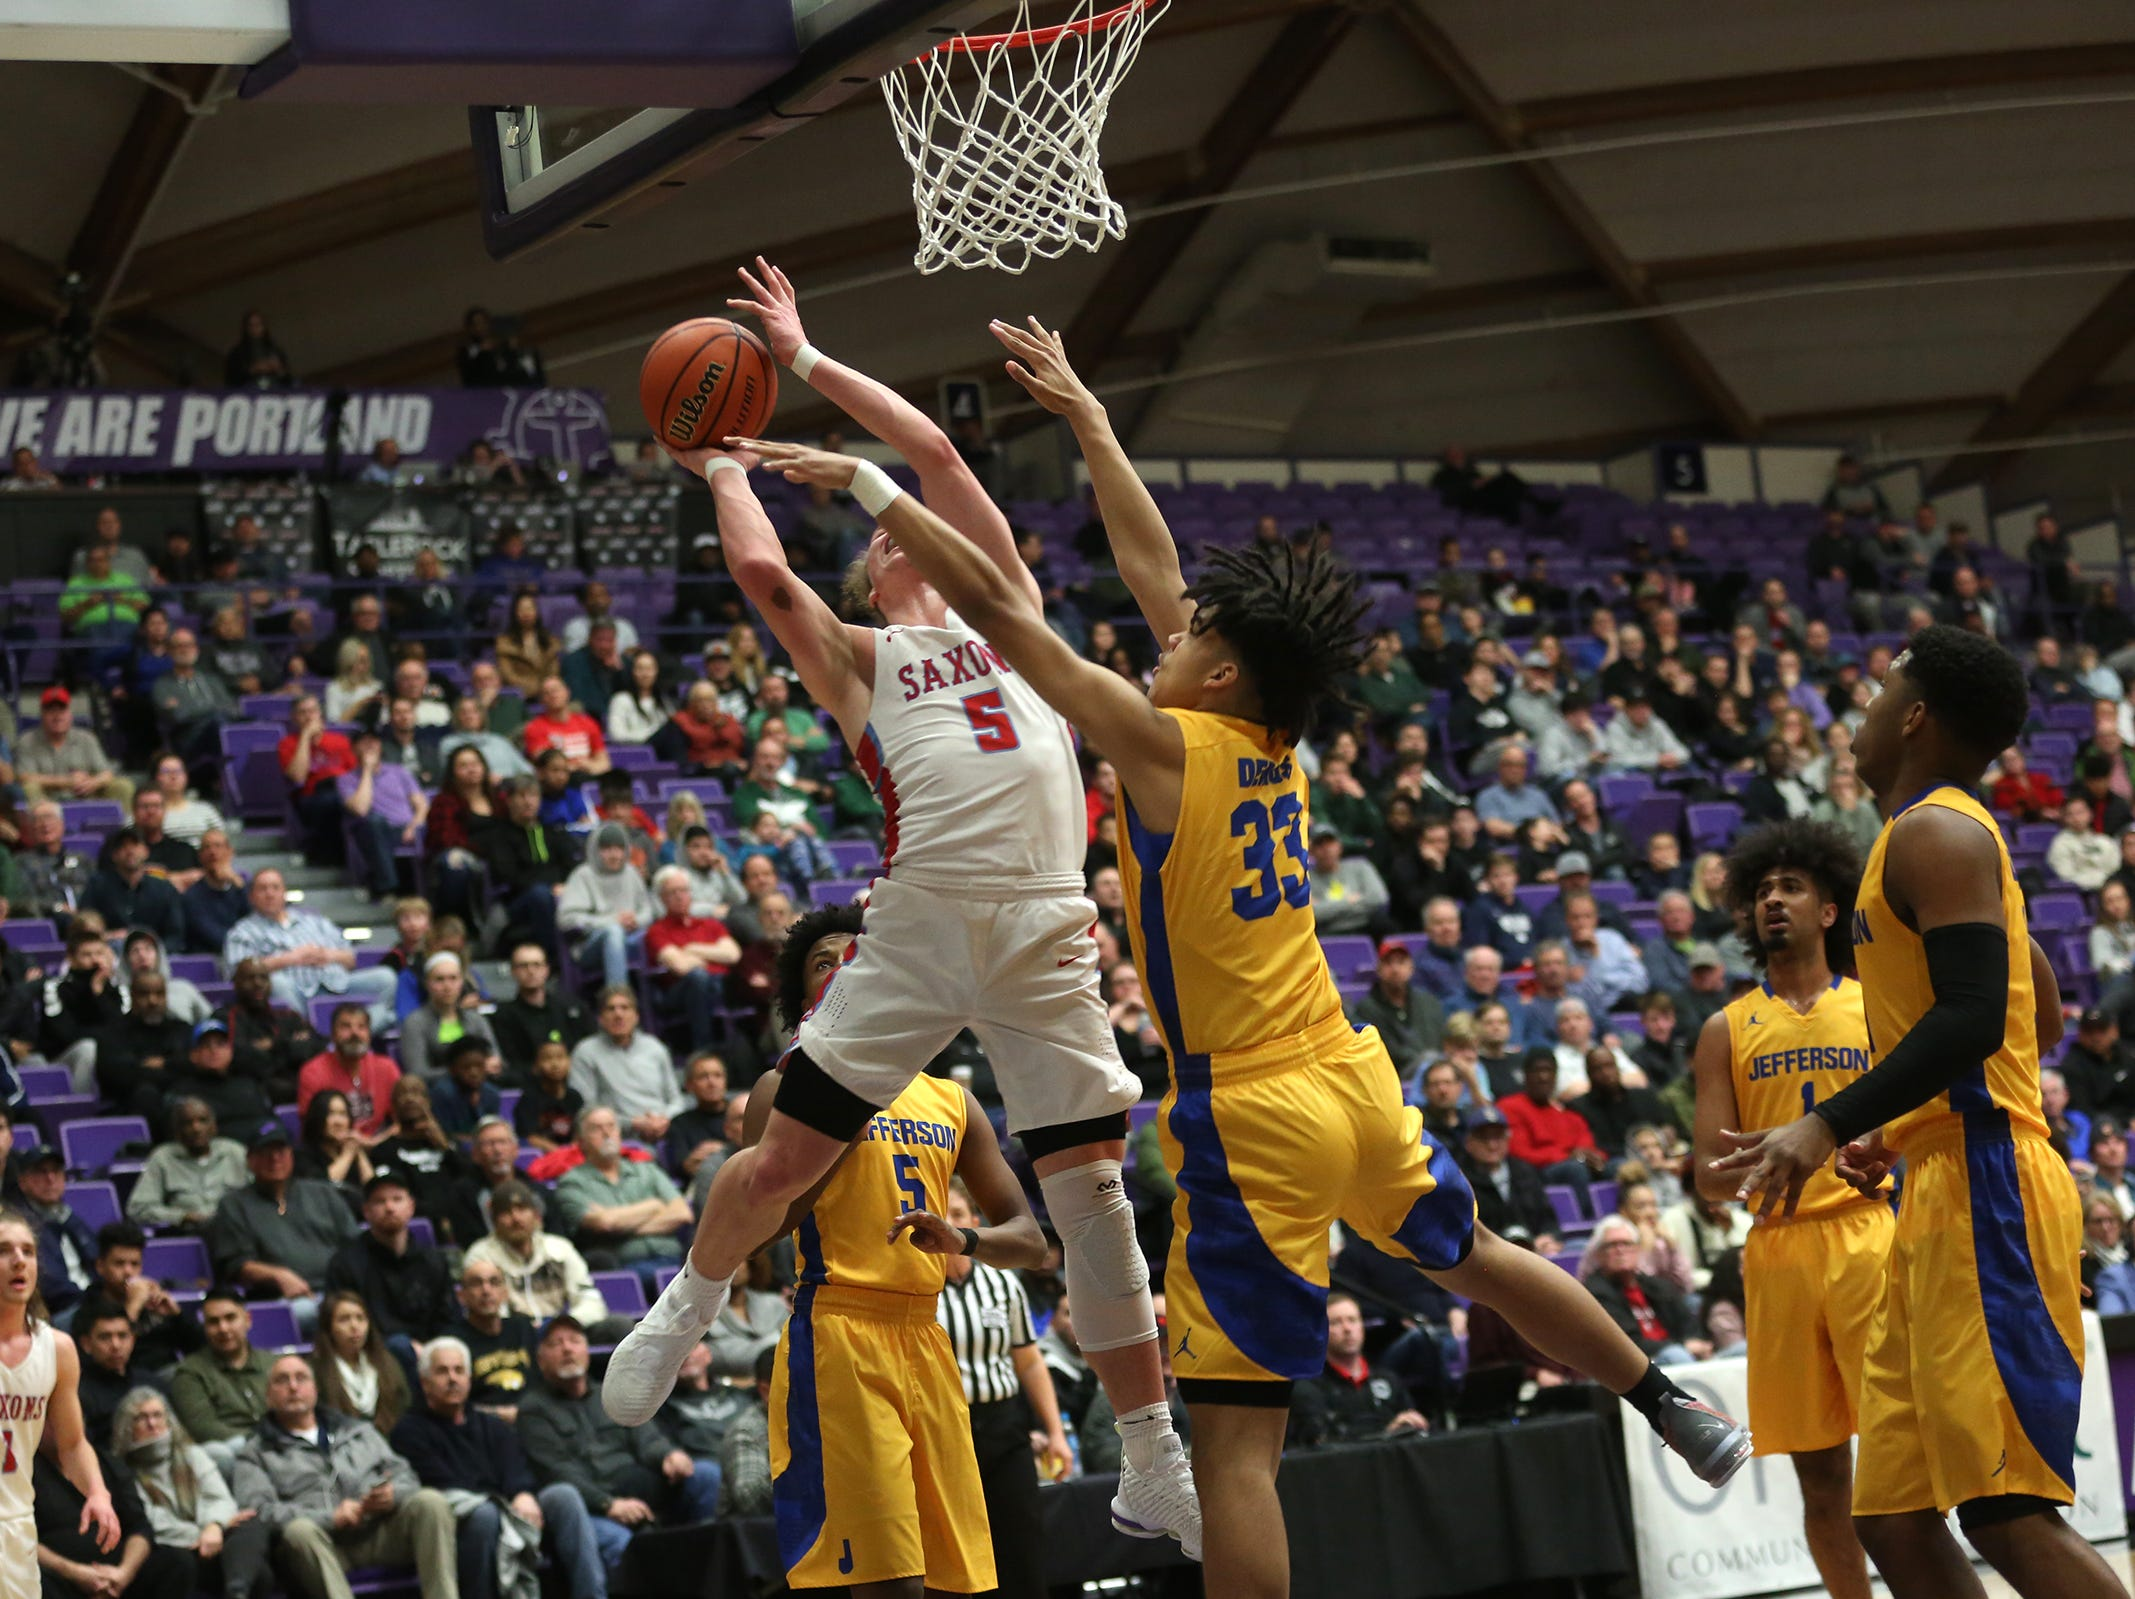 Jefferson's Kamron Robinson (33) is fouled as South Salem's Ryan Brown (5) gets a shot in during the South Salem vs. Jefferson boys basketball OSAA 6A semifinal game at Chiles Center in Portland on Friday, March 8, 2019.